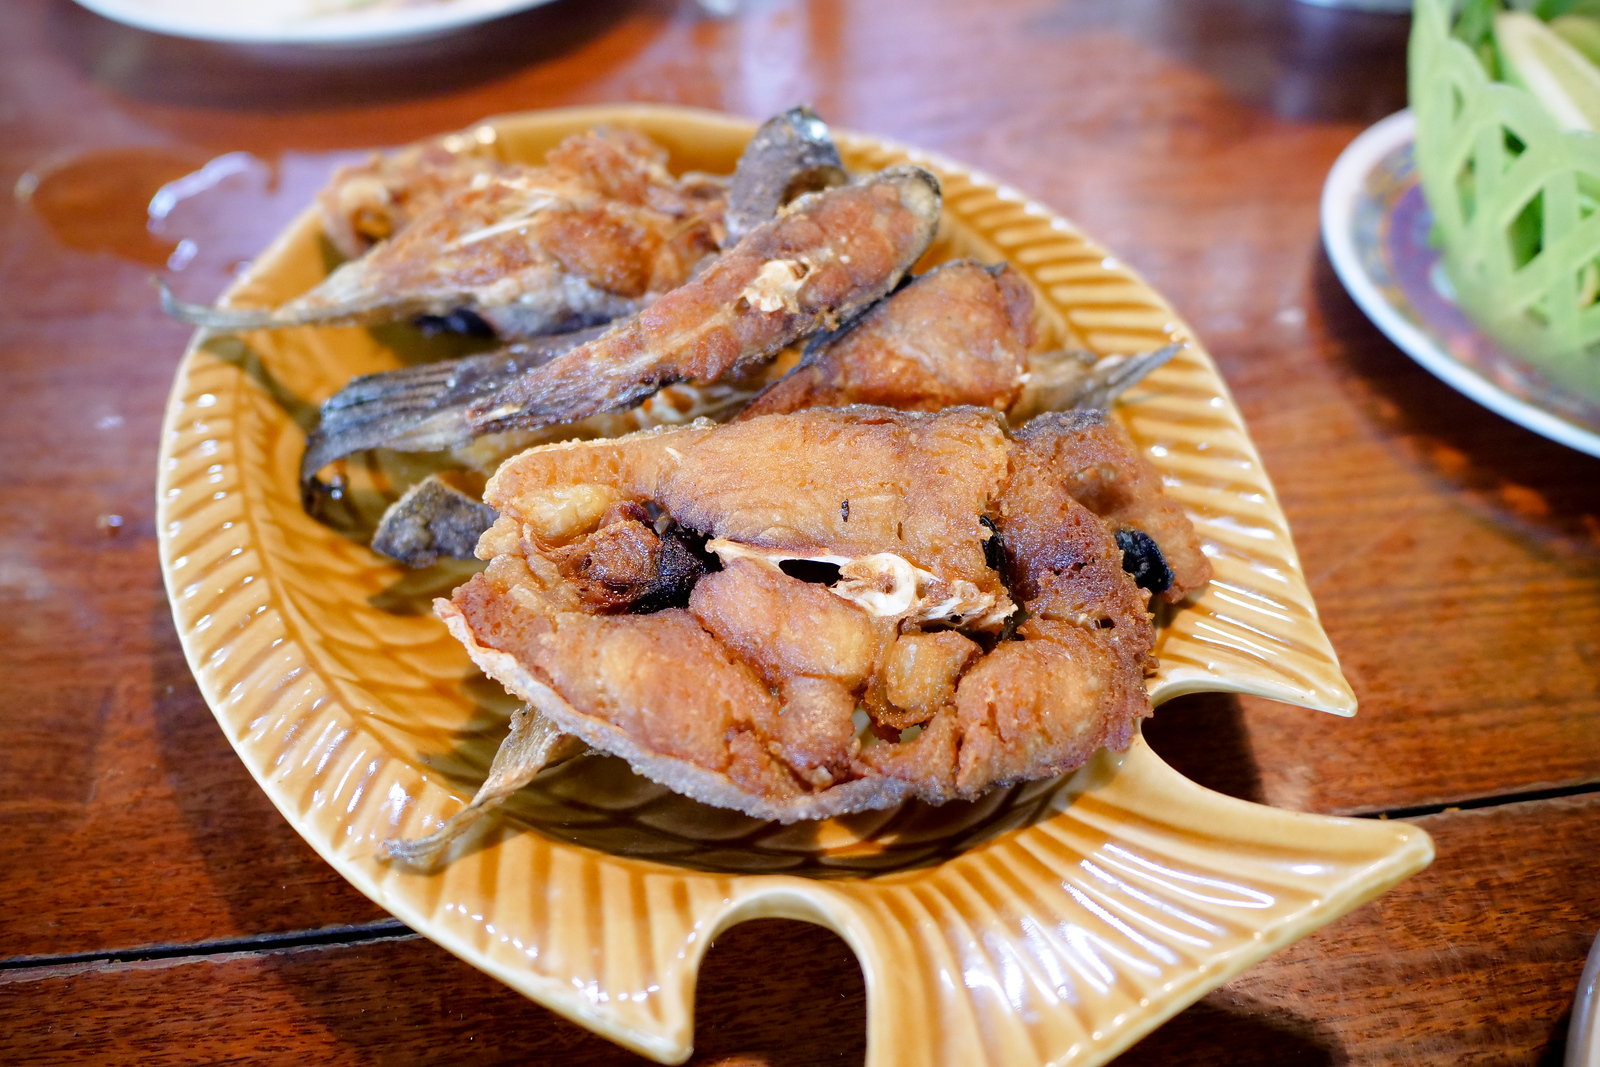 Deep Fried fish are plentiful and delicious at Ba Chao Ahaan Pa